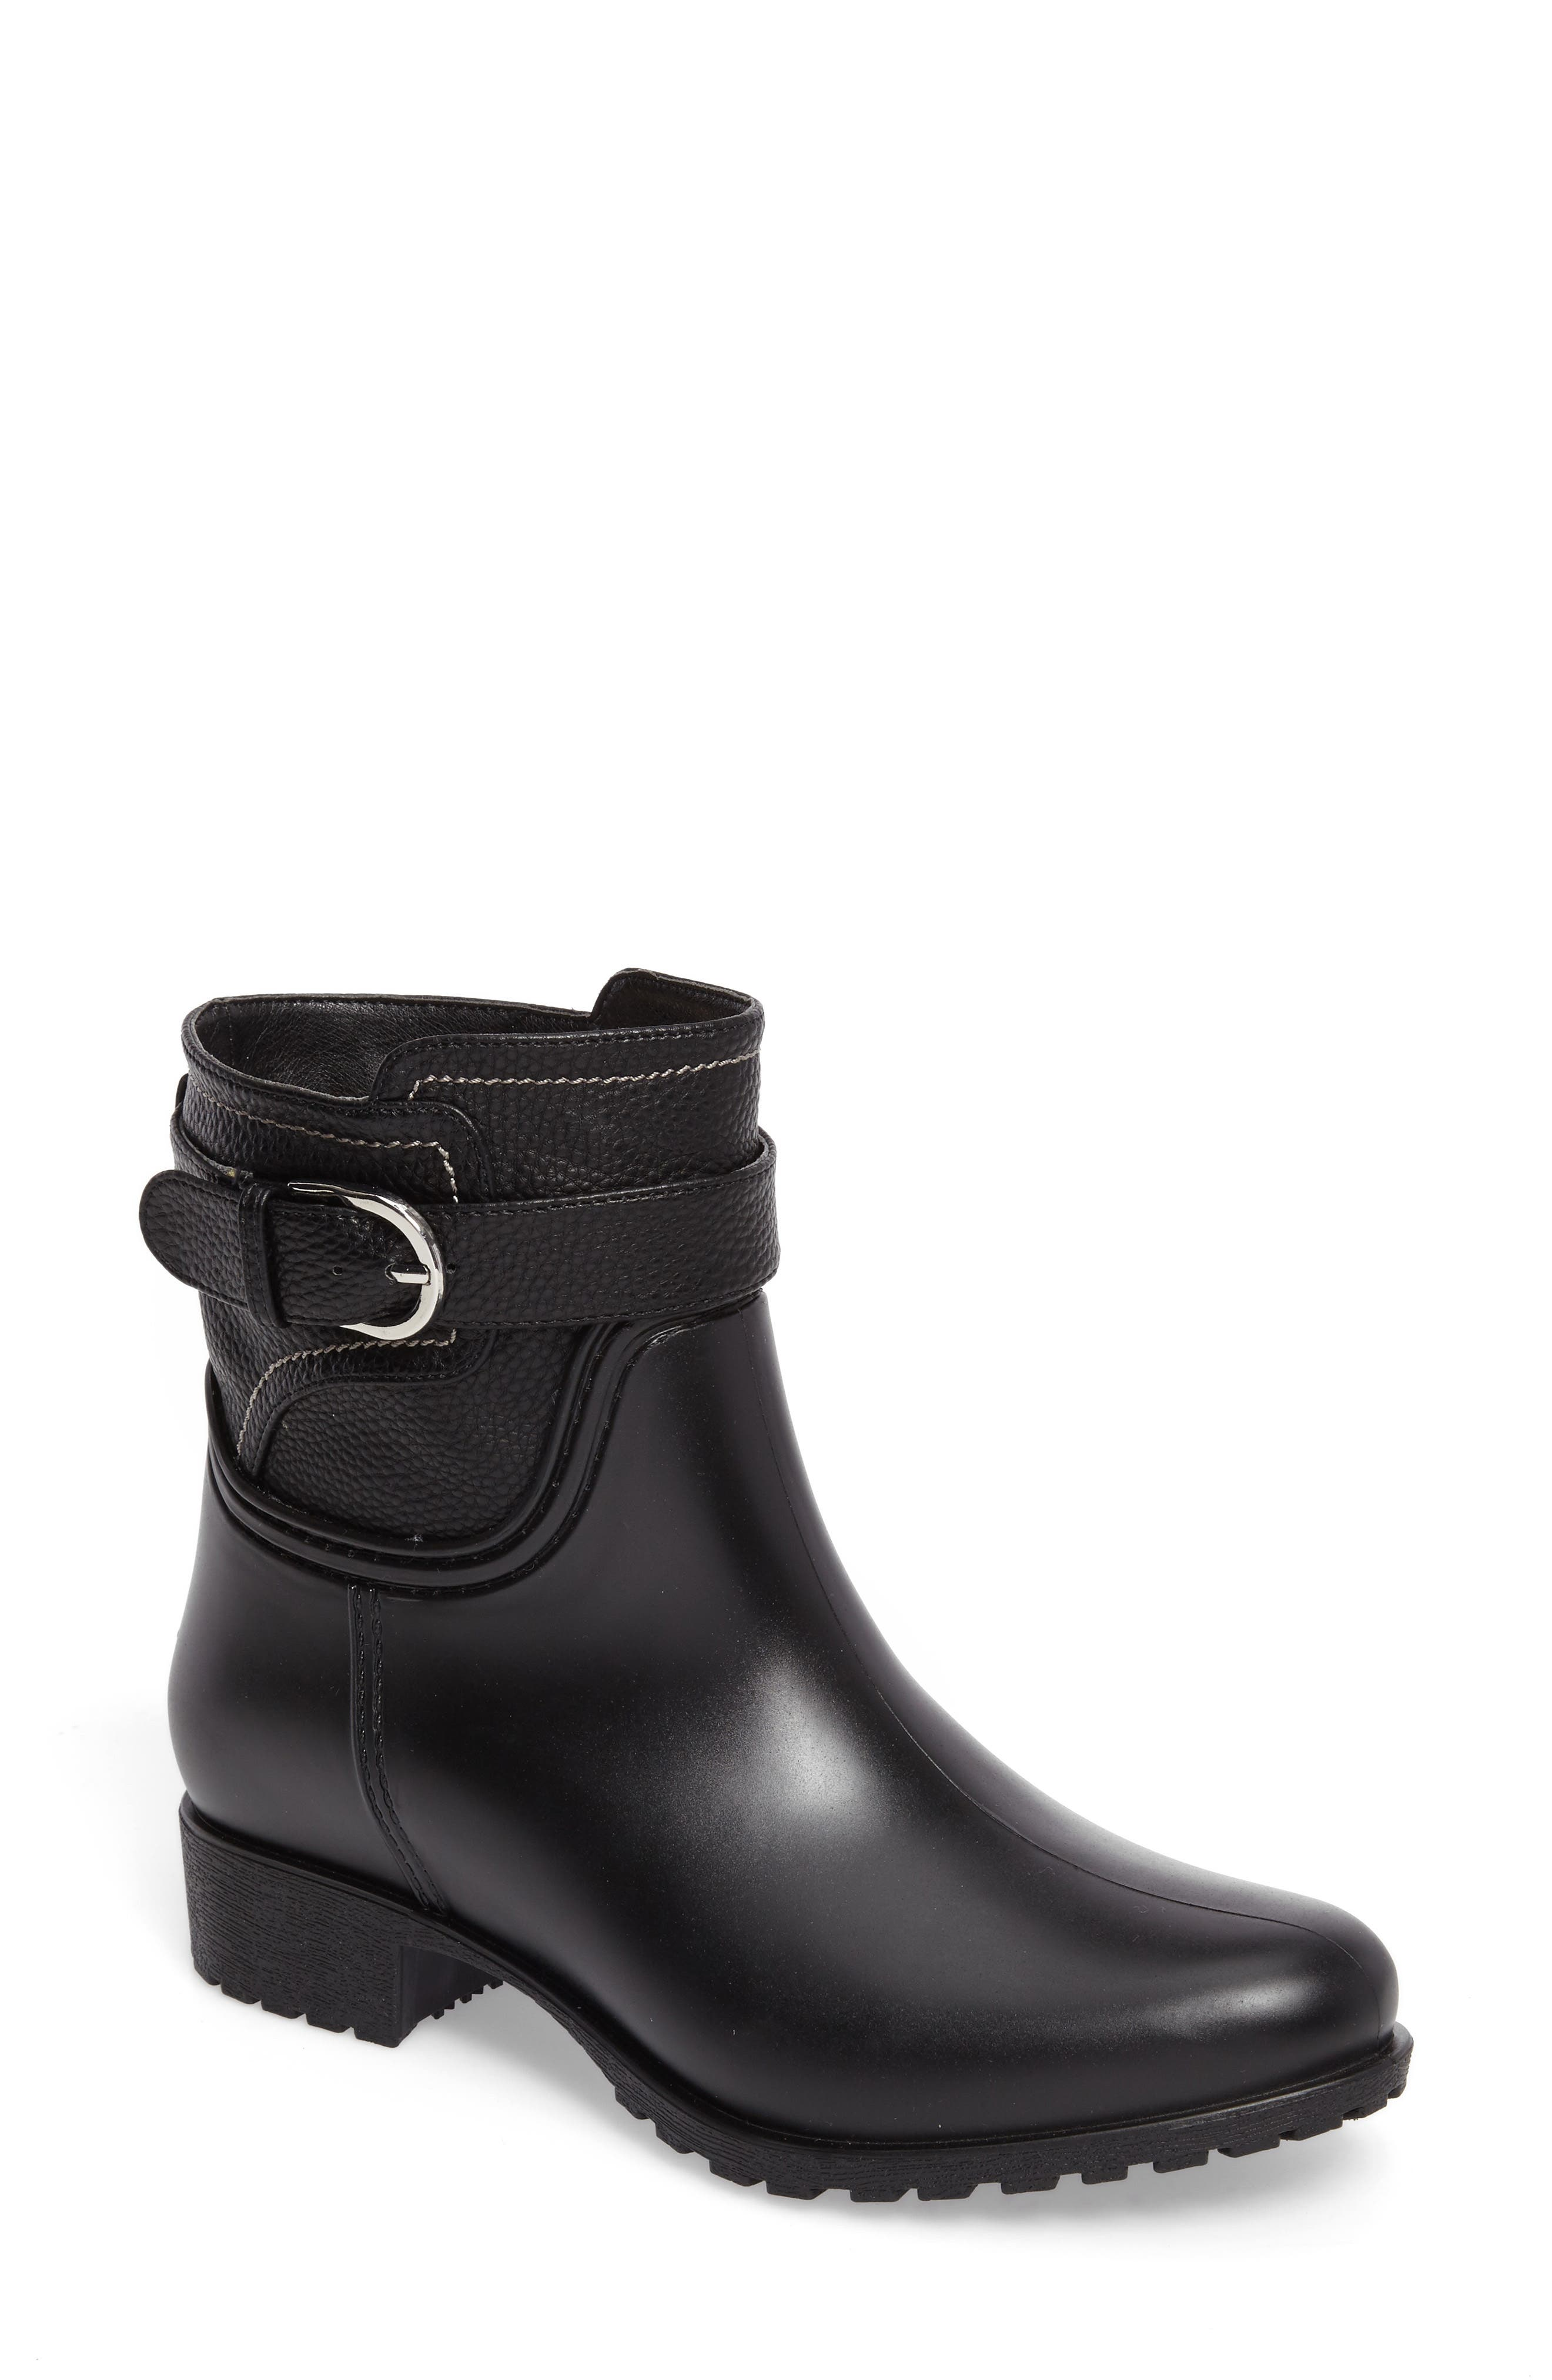 Bowie Faux Water Resistant Mid Boot,                         Main,                         color, Black